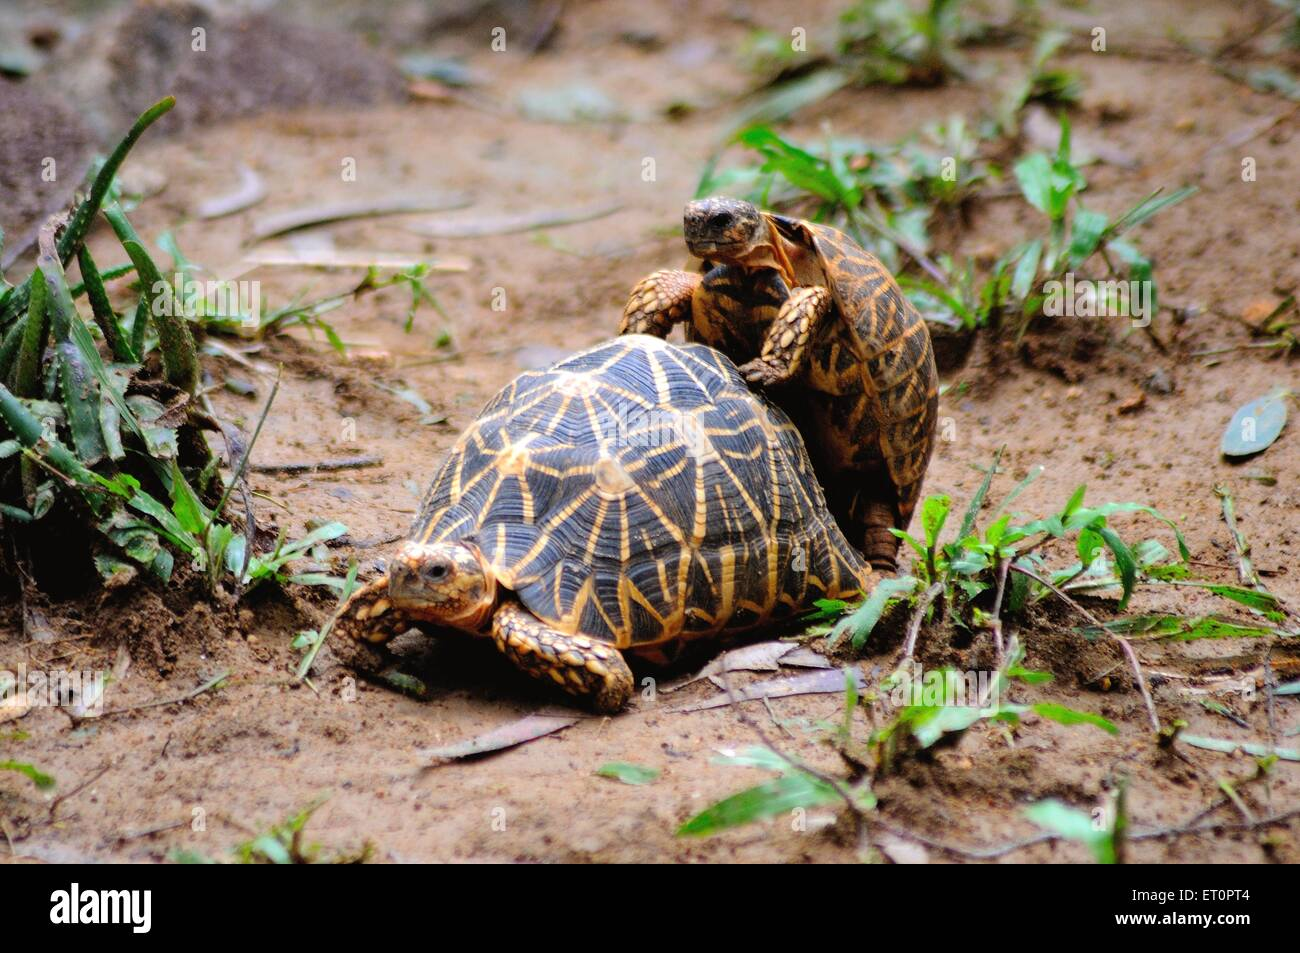 Reptiles ; turtles playing in national safari park ; Bangalore ; Karnataka ; India - Stock Image